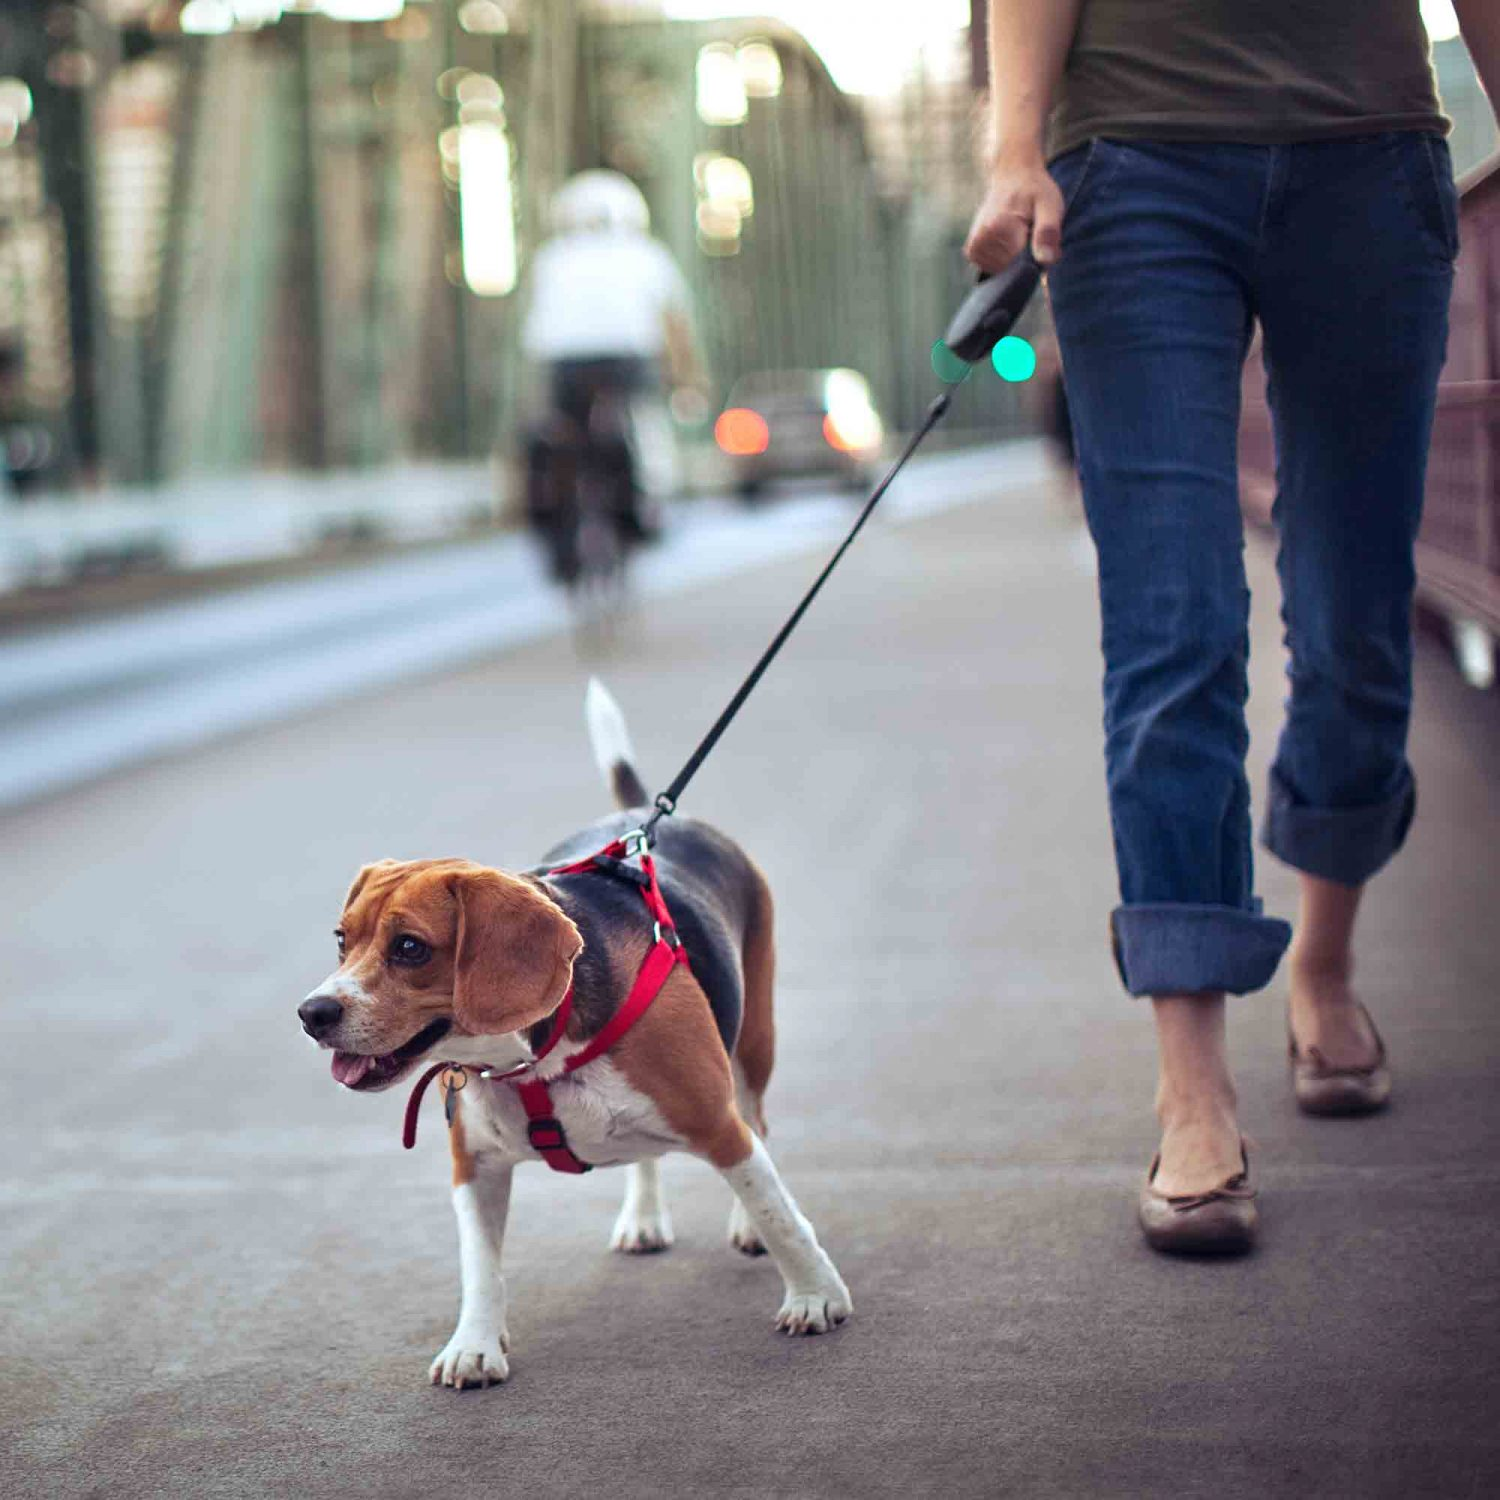 retractable leashes are a serious threat to pet health and pet safety